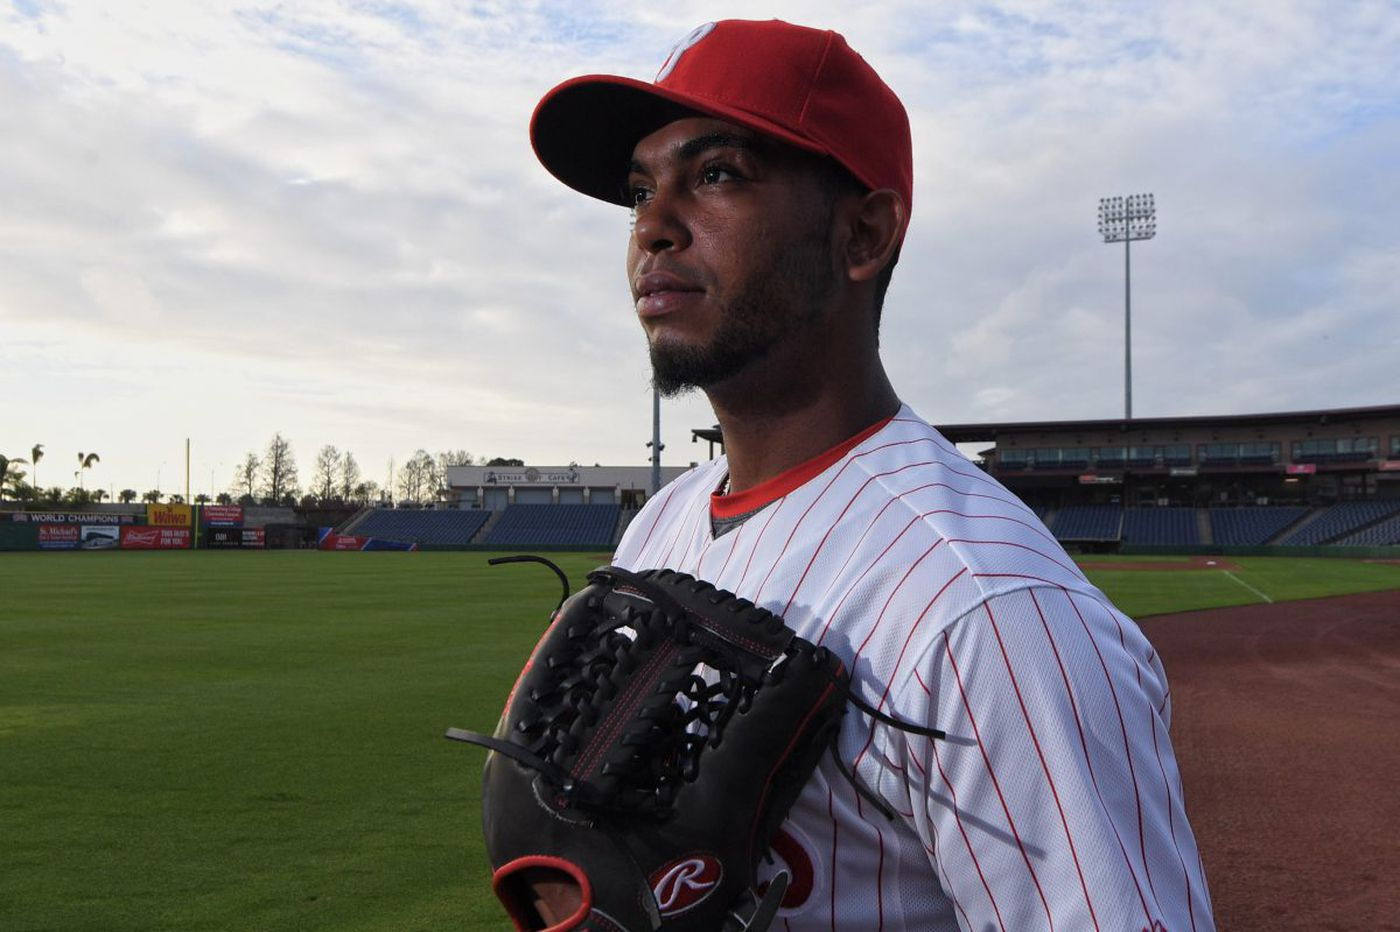 Phillies prospect Seranthony Dominguez leads crop of promising young arms